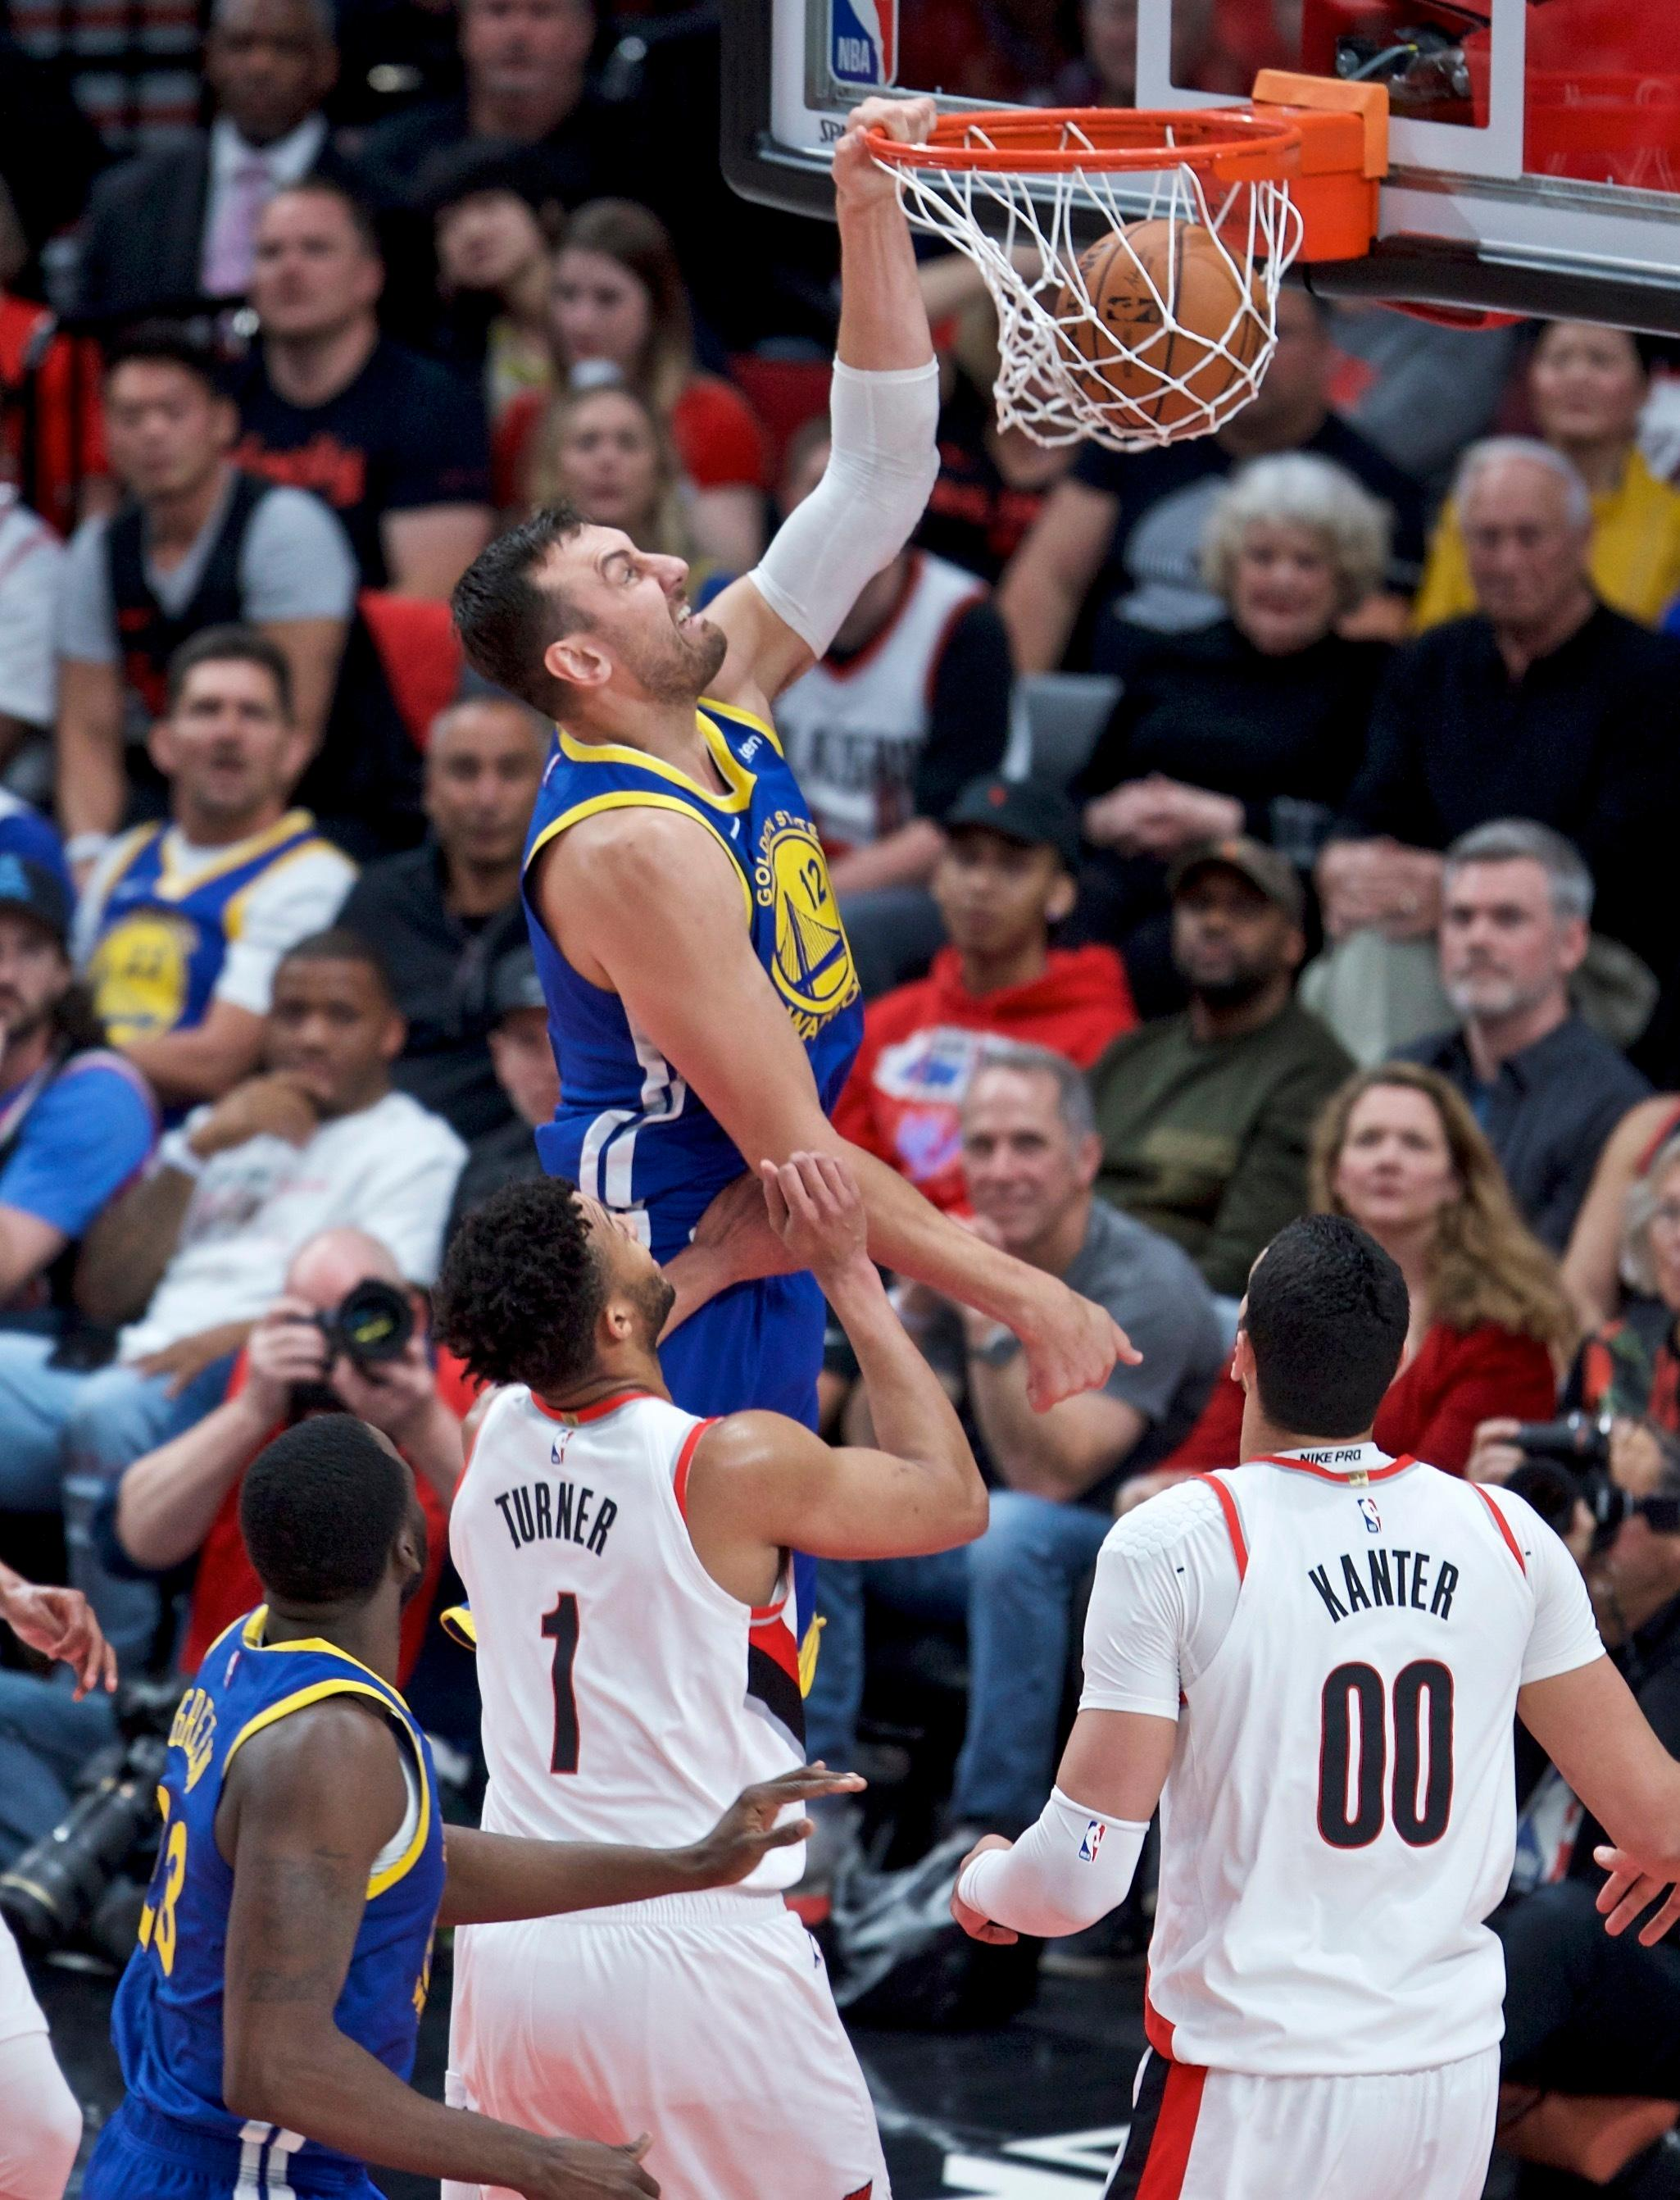 Golden State Warriors center Andrew Bogut, top, dunks over Portland Trail Blazers guard Evan Turner during the first half of Game 4 of the NBA basketball playoffs Western Conference finals Monday, May 20, 2019, in Portland, Ore. (AP Photo/Craig Mitchelldyer)